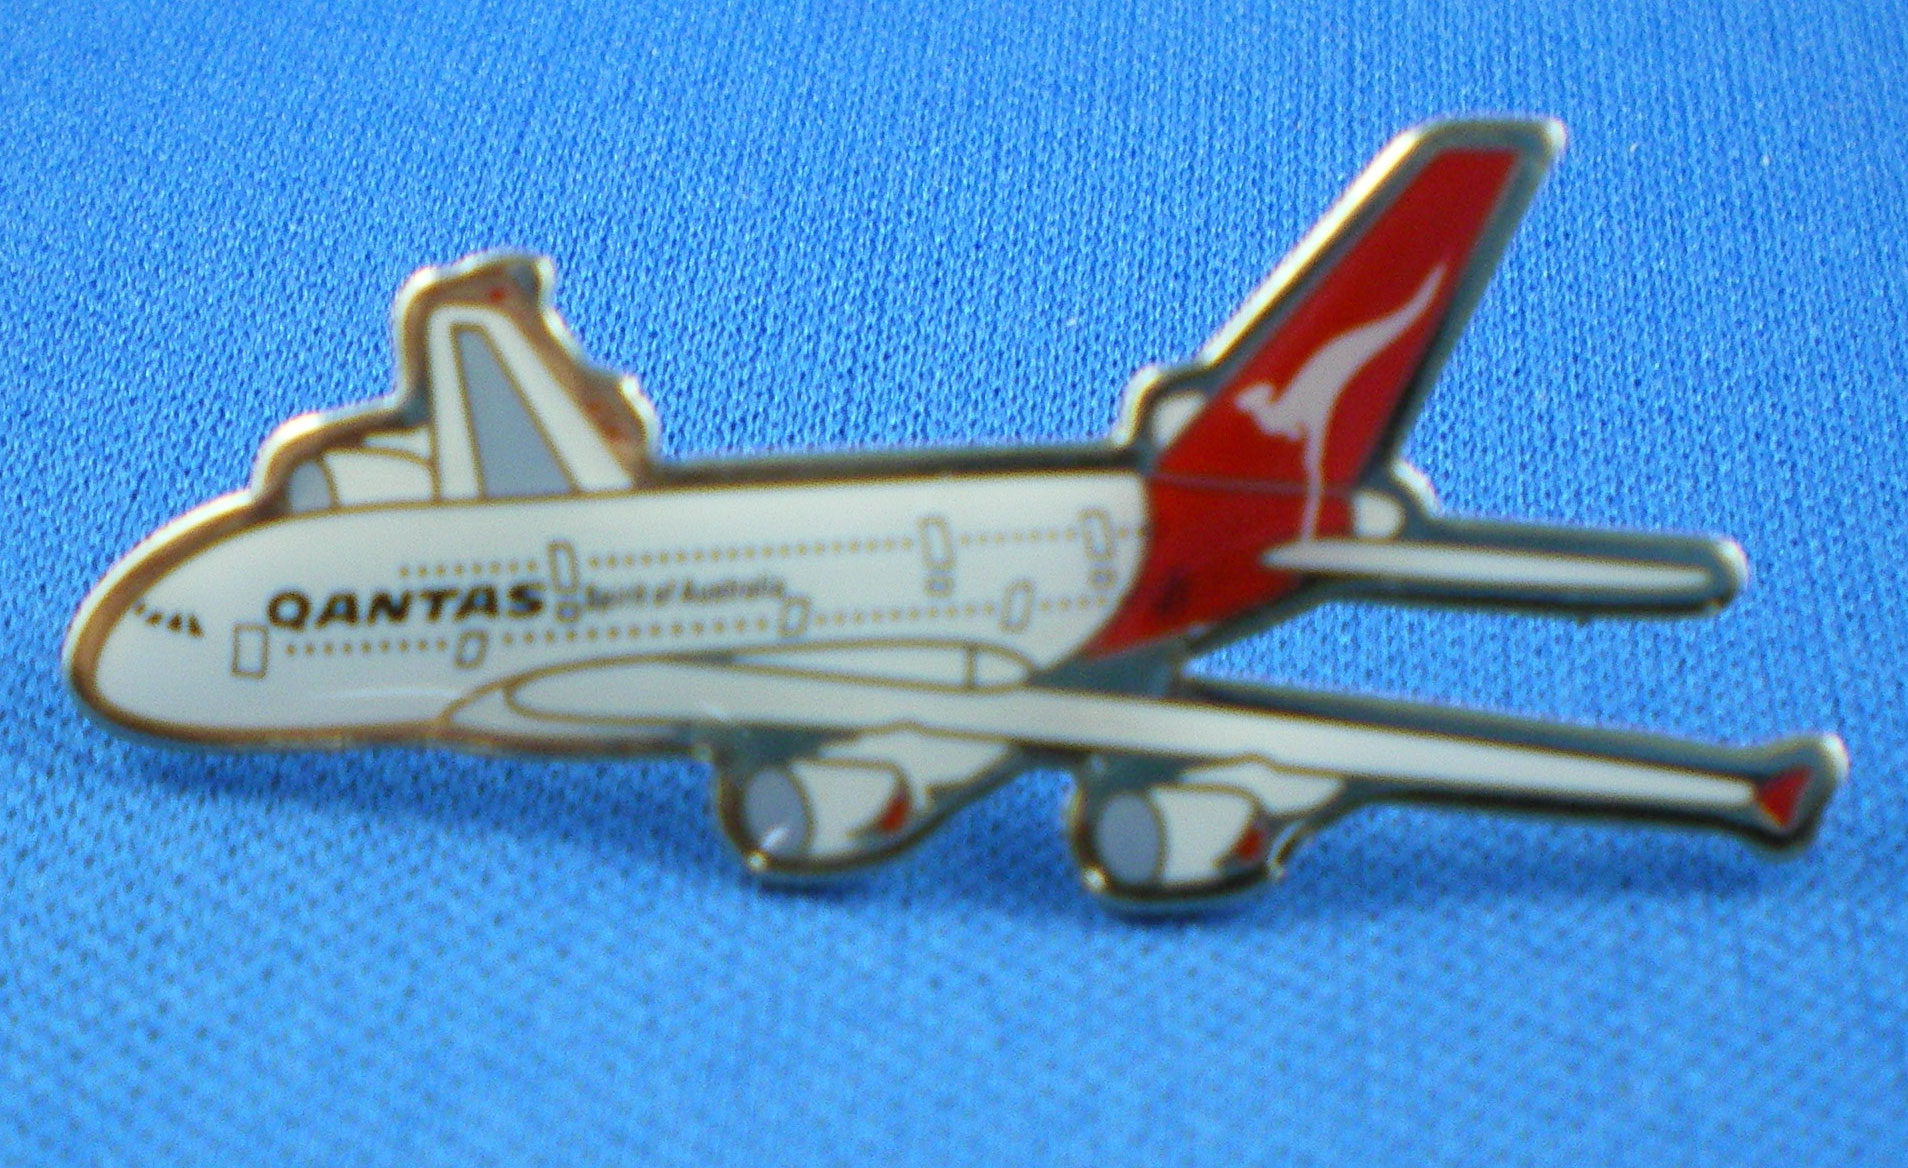 QANTAS - A380 LAPEL BADGE